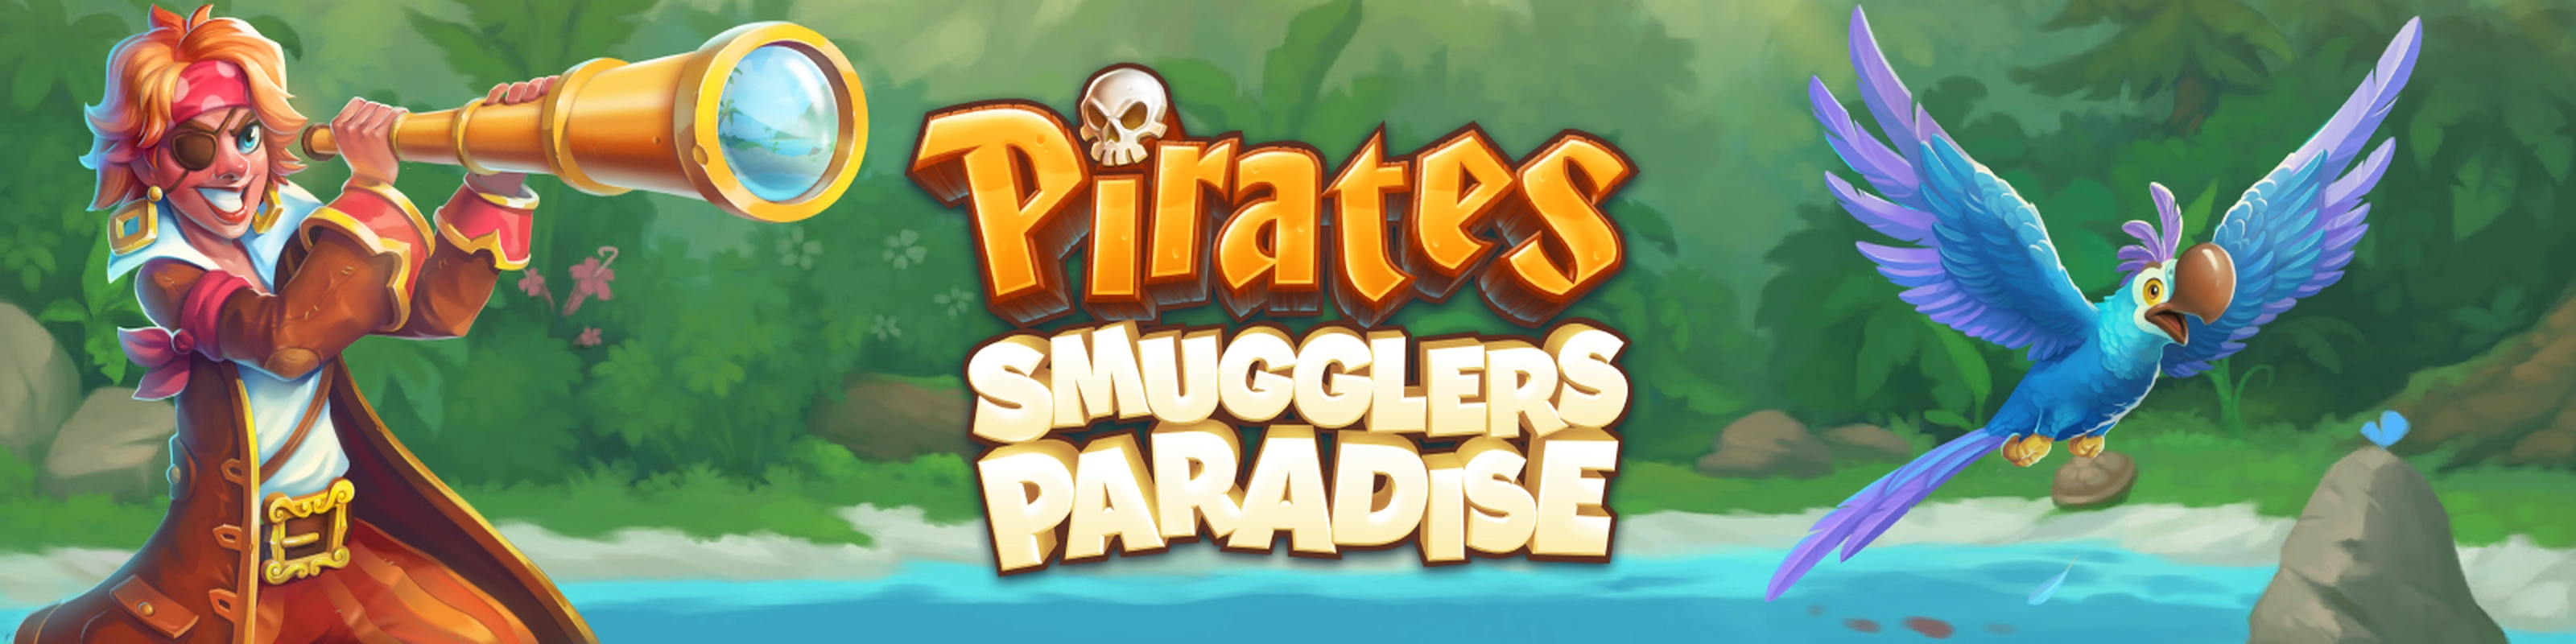 The Pirates Paradise (Microgaming) Online Slot Demo Game by Microgaming